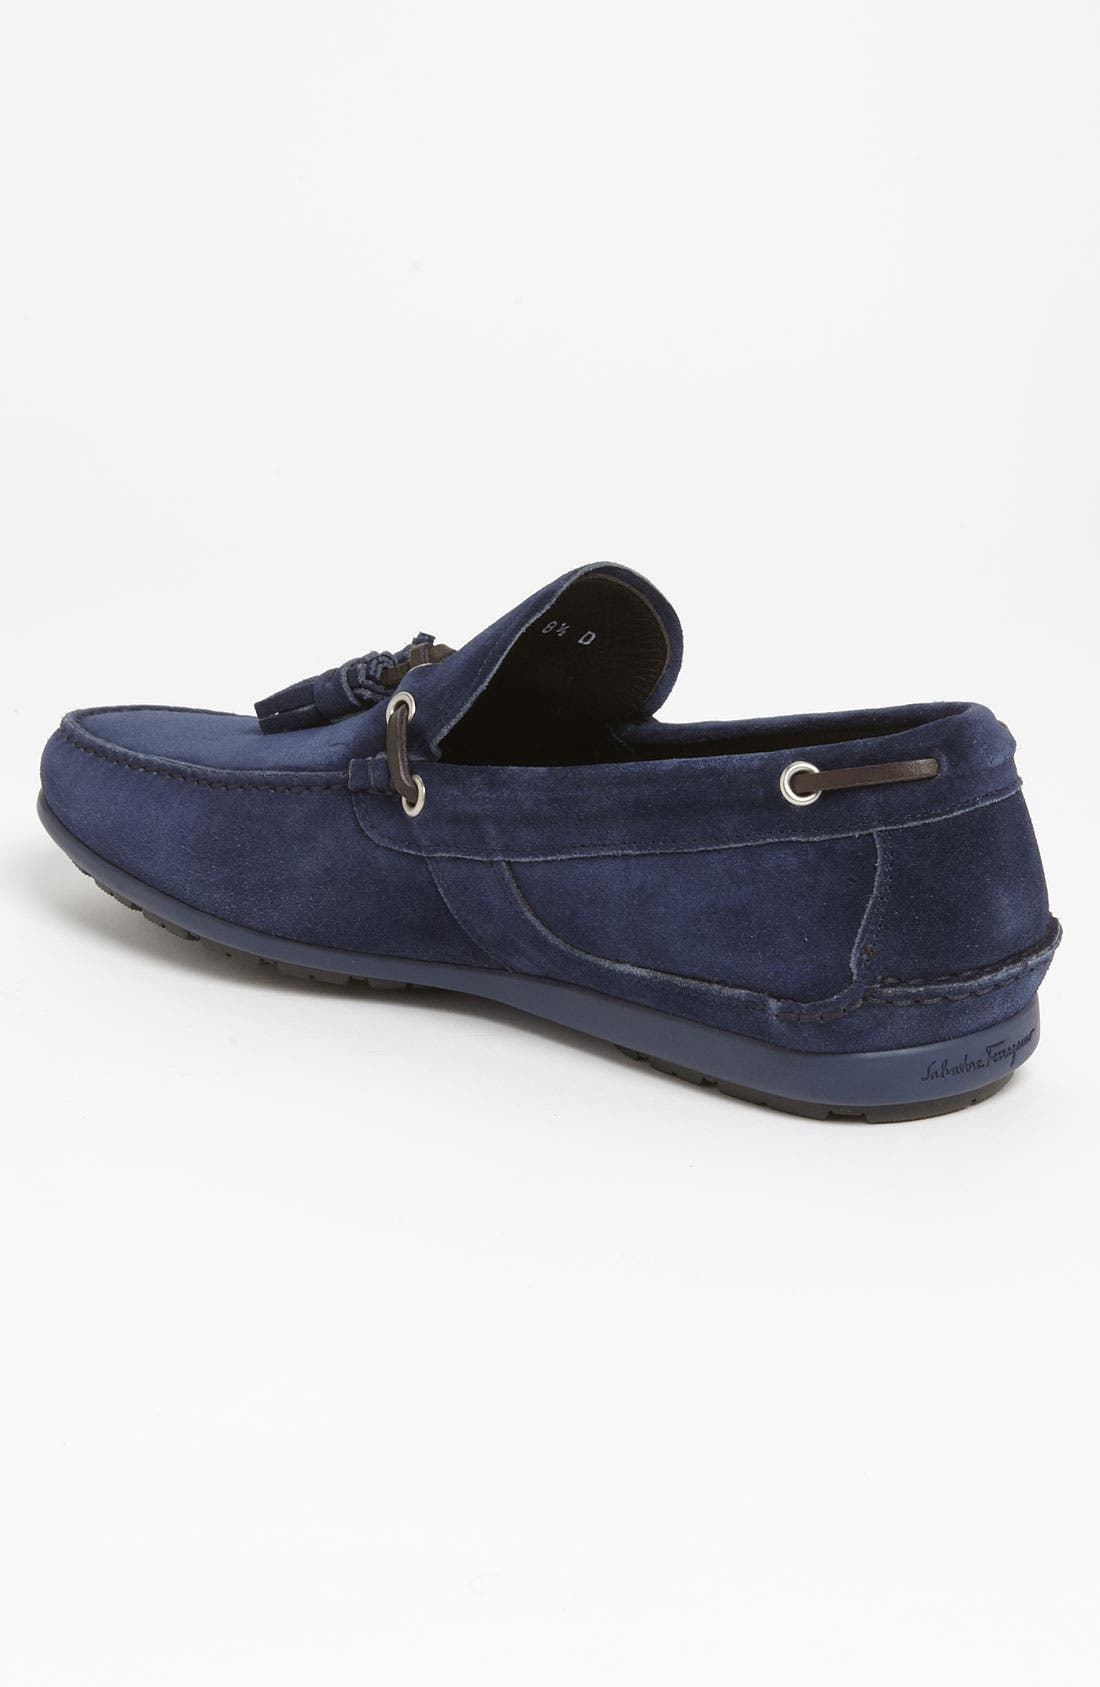 Alternate Image 2  - Salvatore Ferragamo 'Amos 3' Tassel Driving Shoe